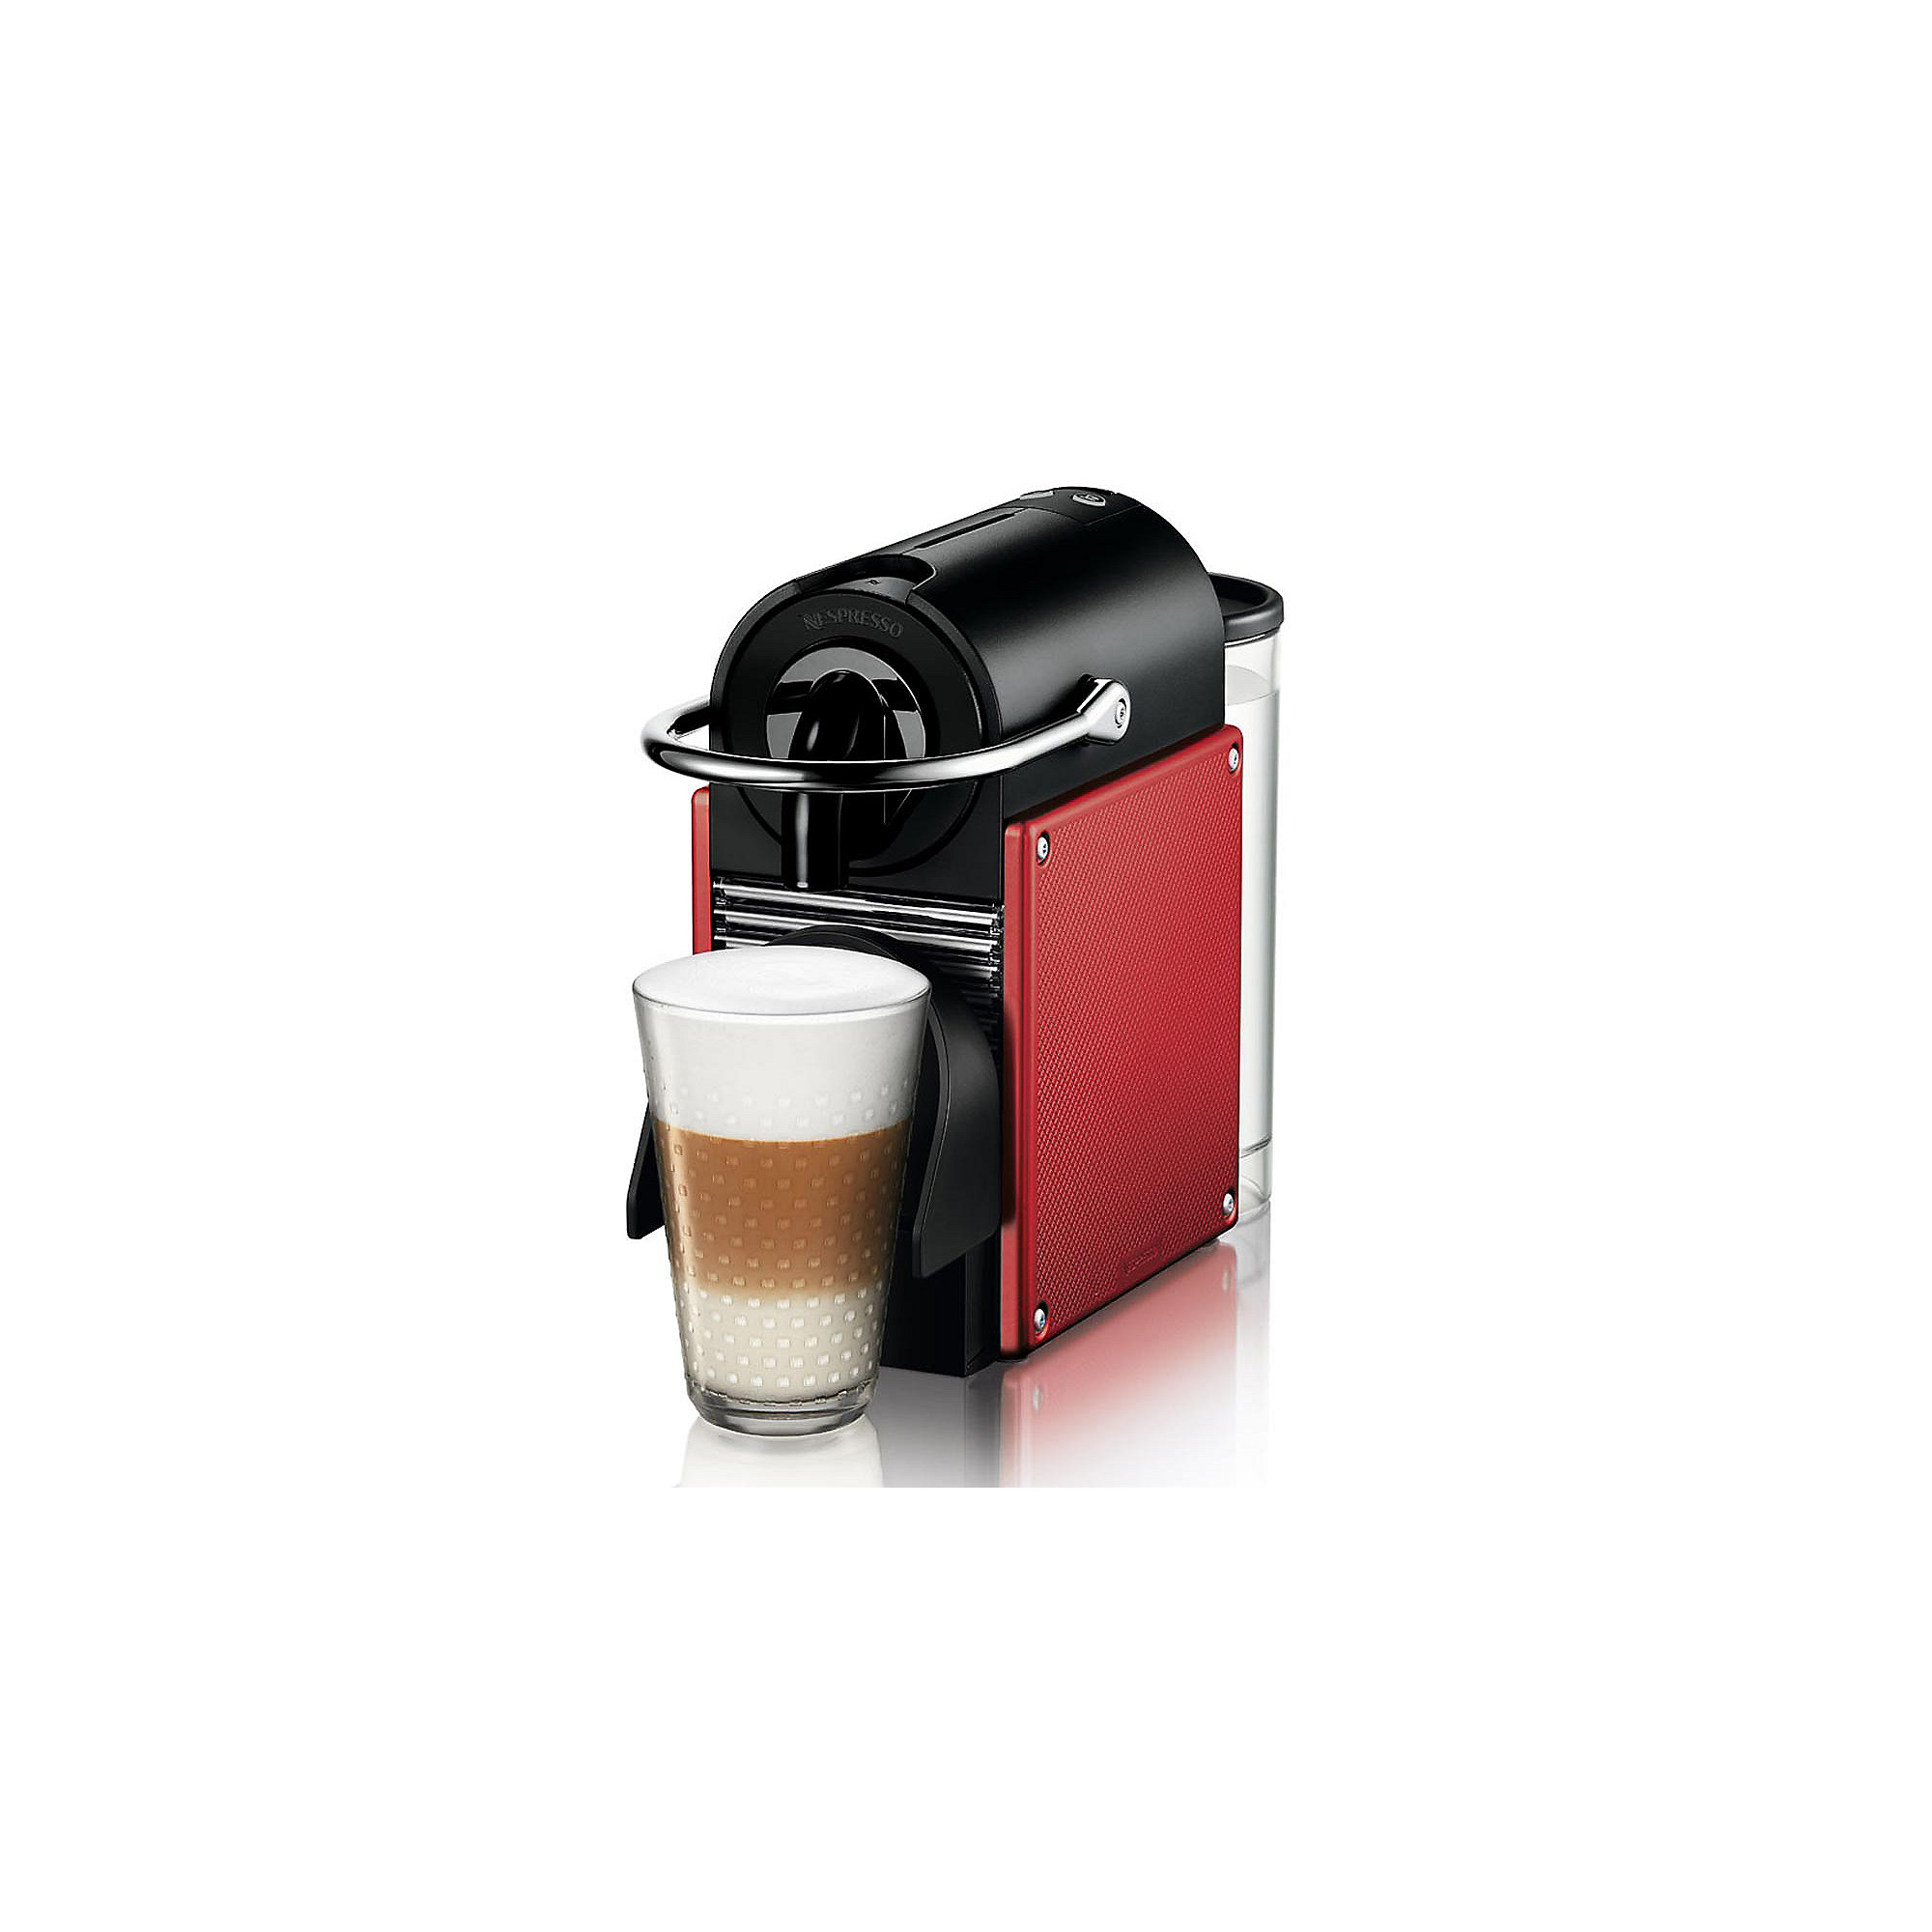 DeLonghi EN 125.R Pixie Nespresso-System Carmine Red